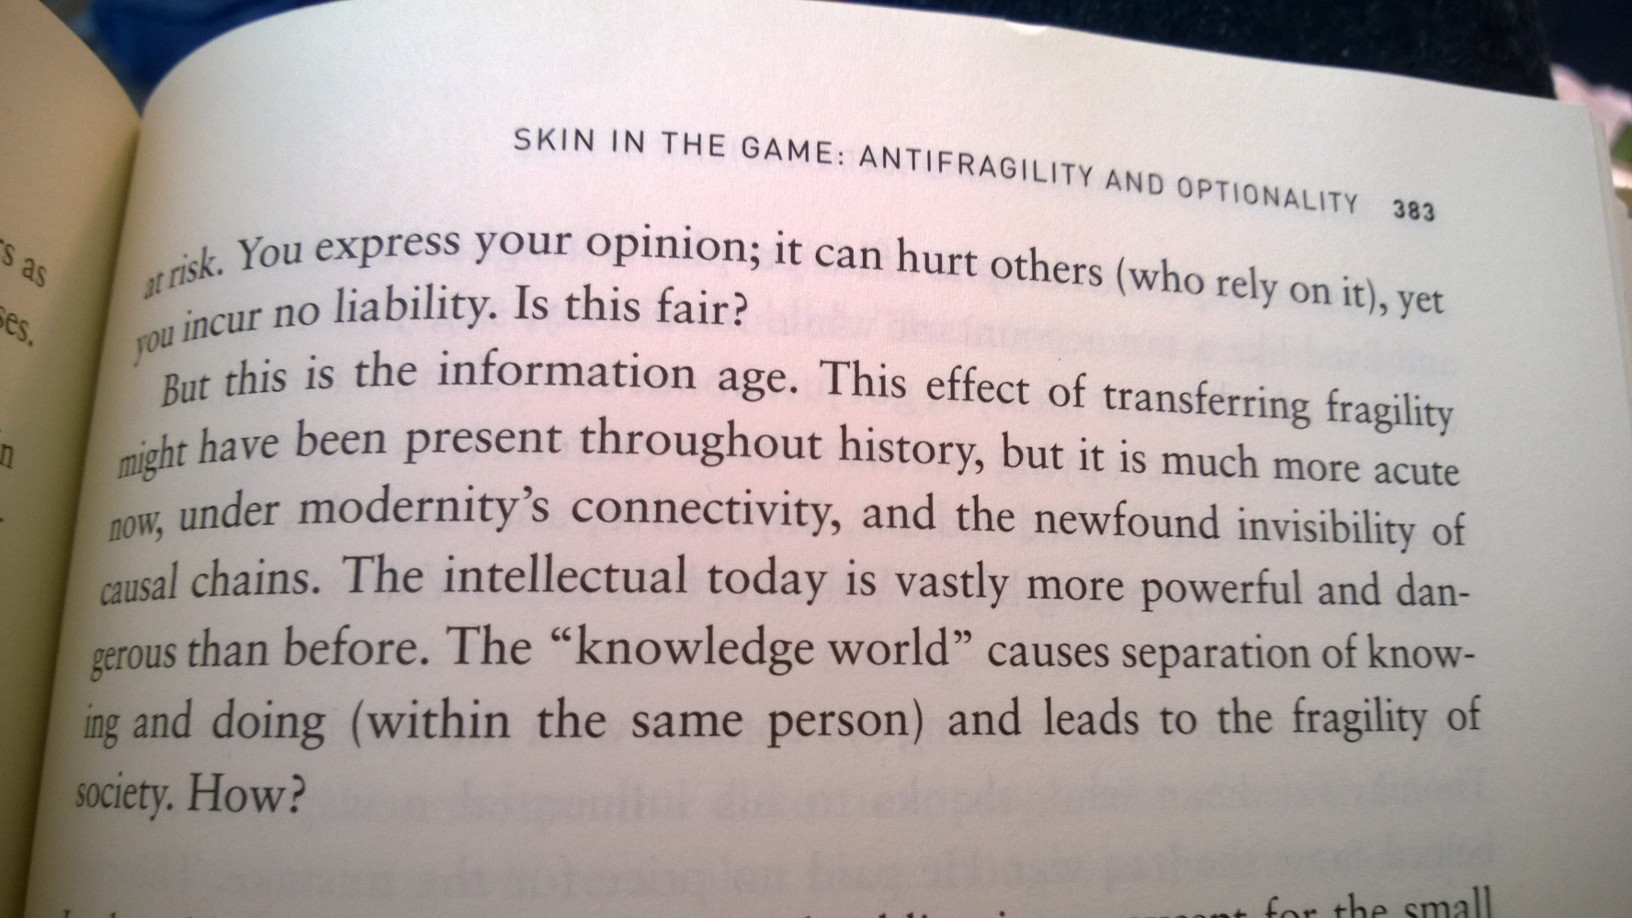 a passage from Taleb's 'Antifragile' that mentions knowing and doing